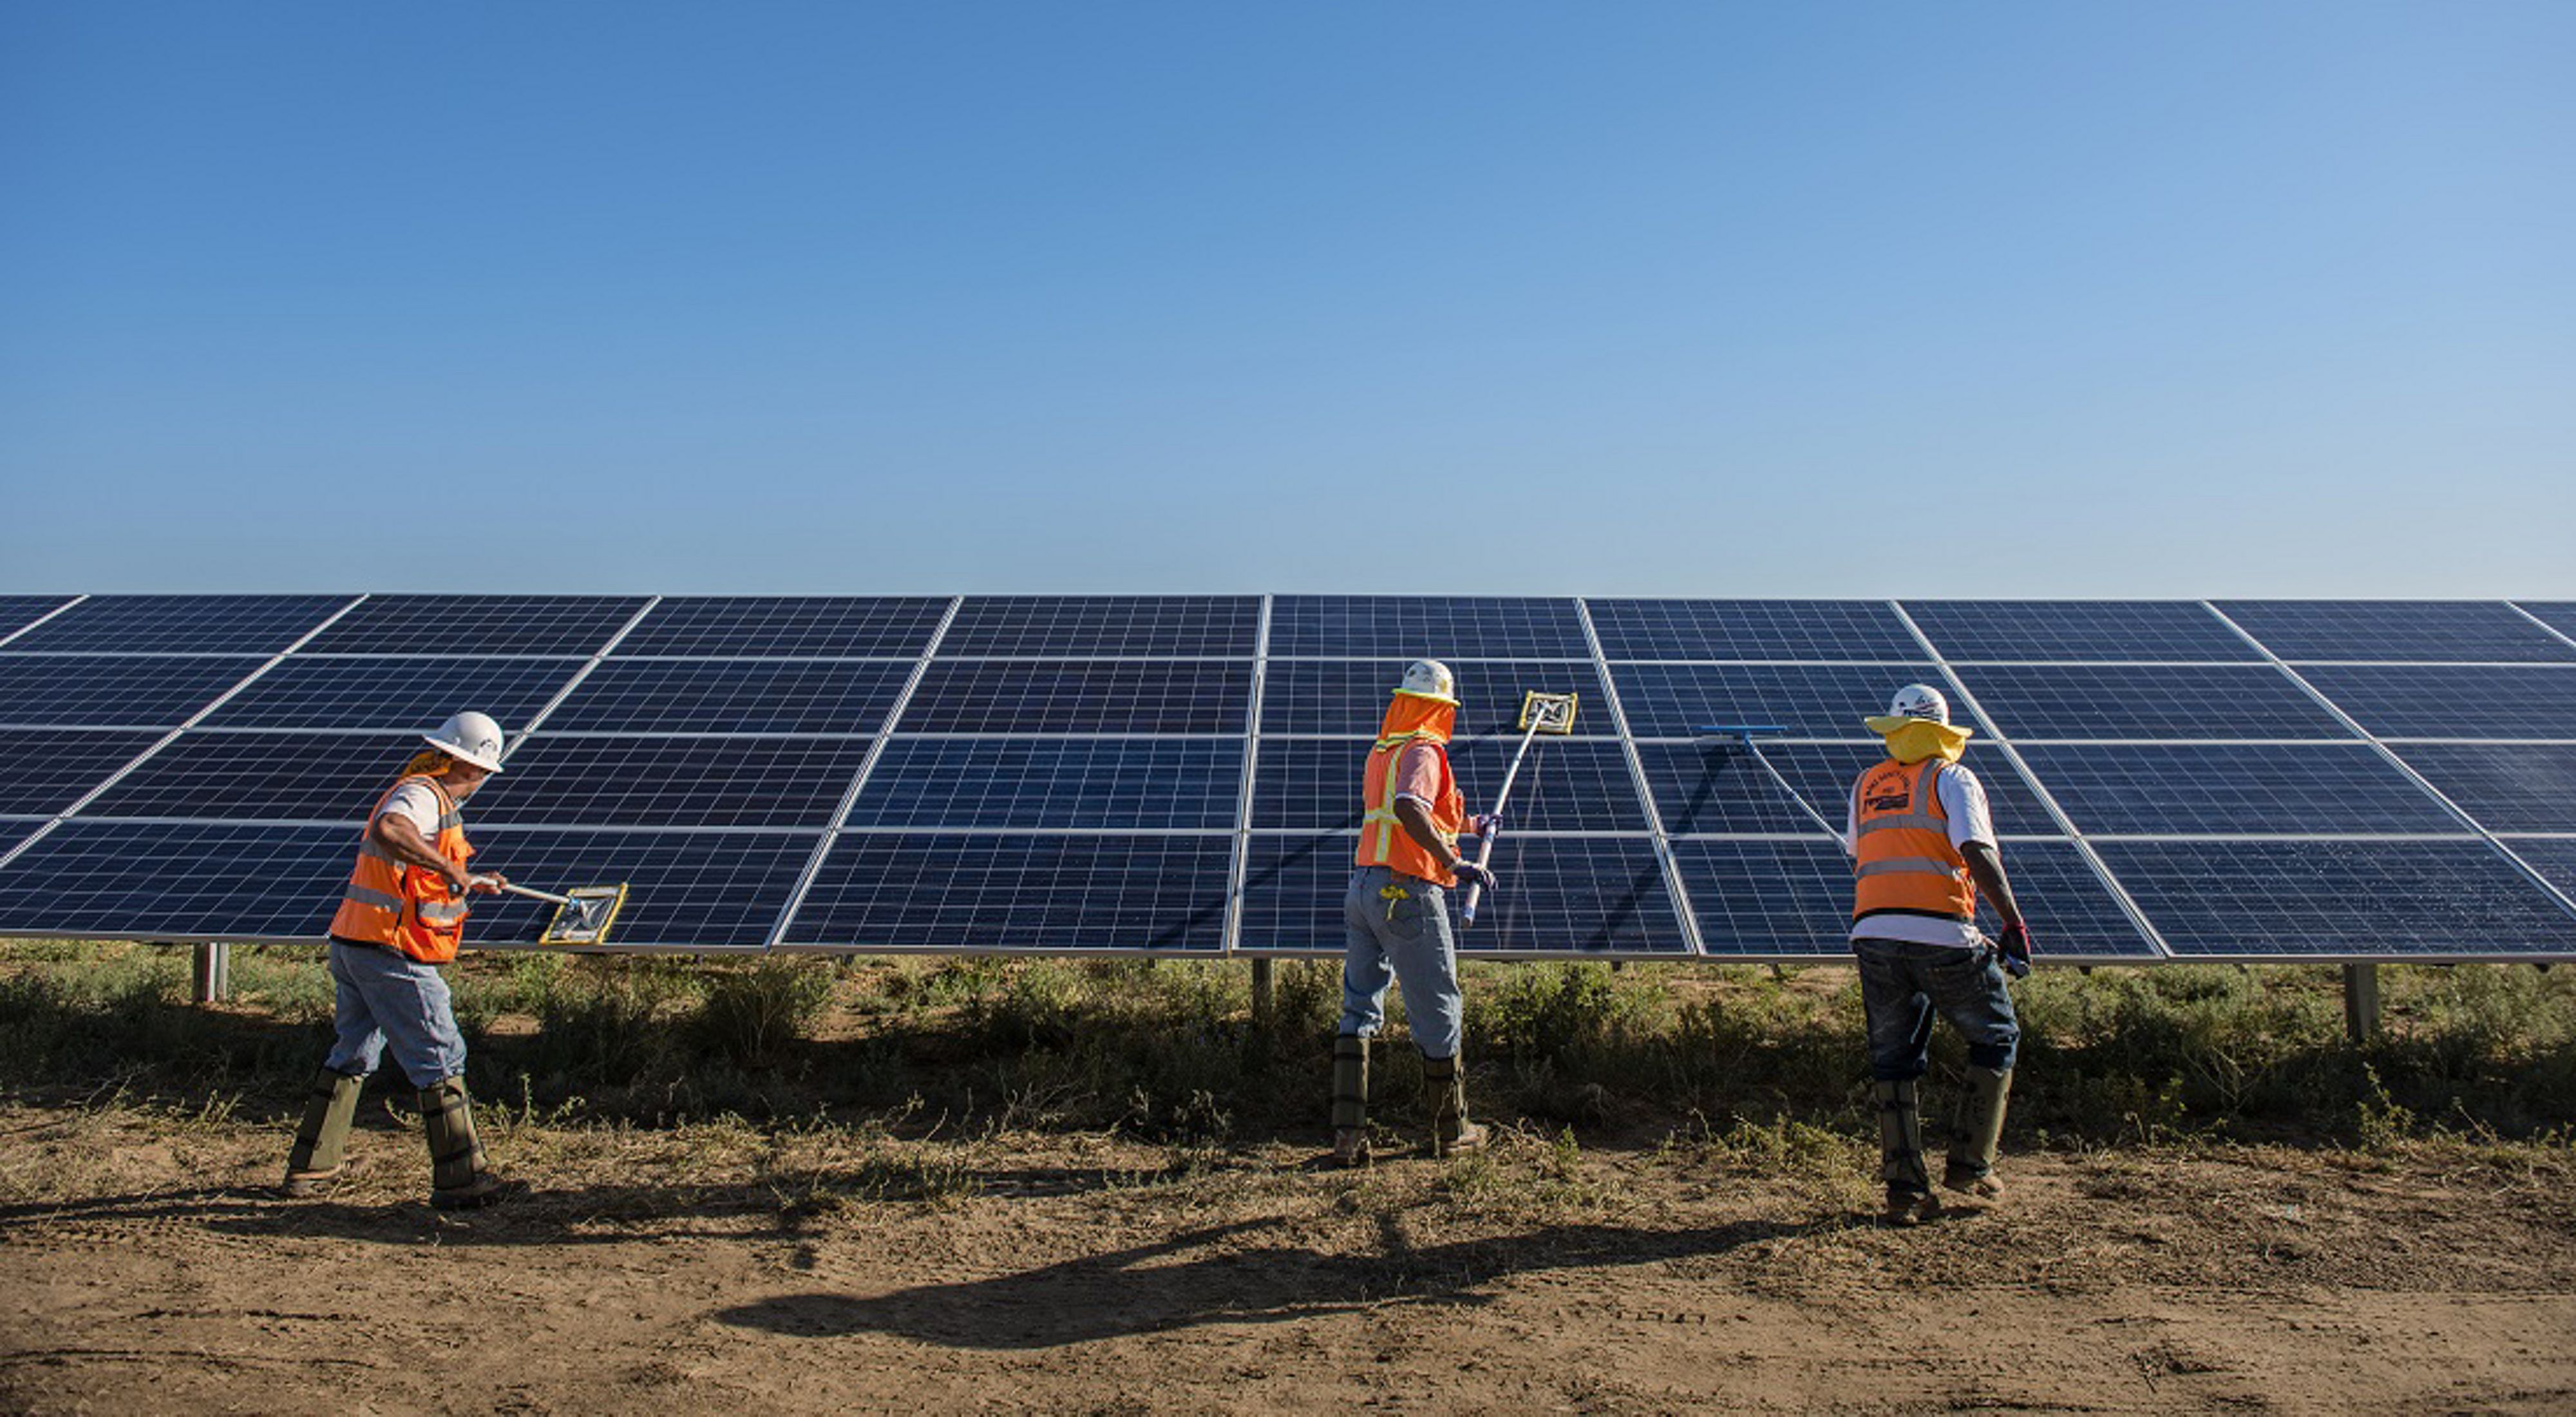 Three workers in hard hats cleaning solar panels